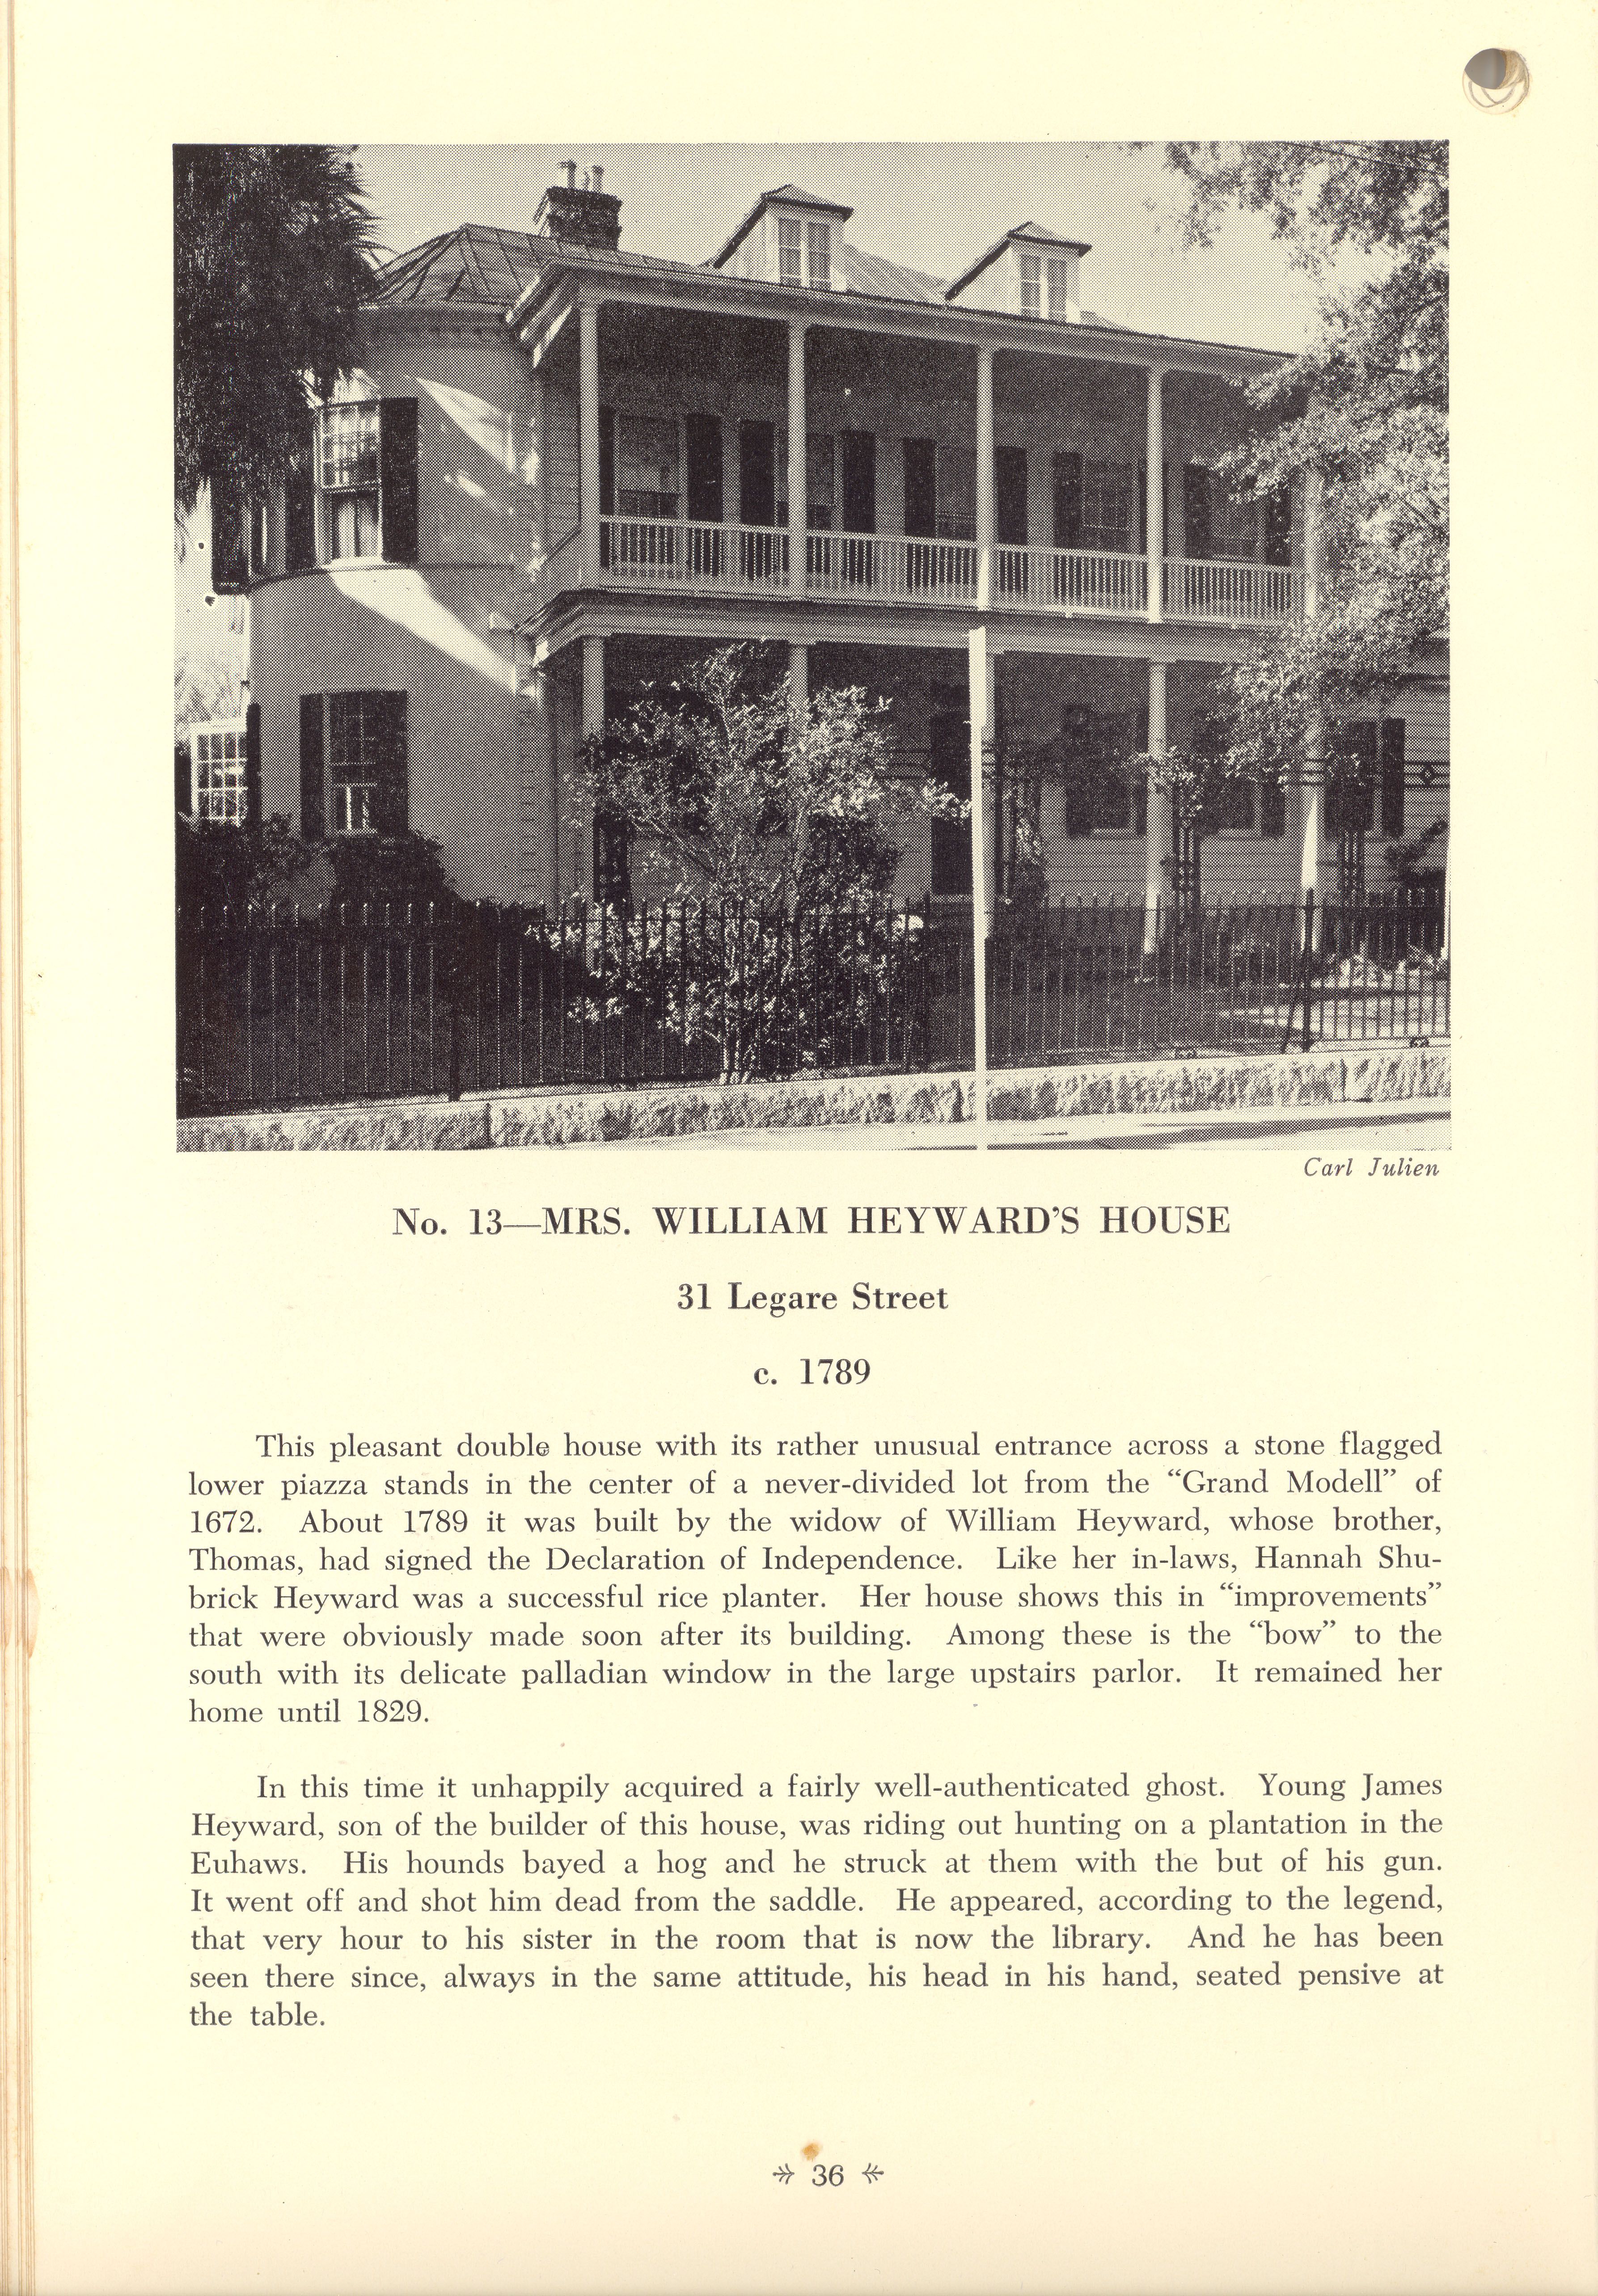 Page 36:  No. 13 - Mrs. William Heyward's House, 31 Legare Street, c. 1789